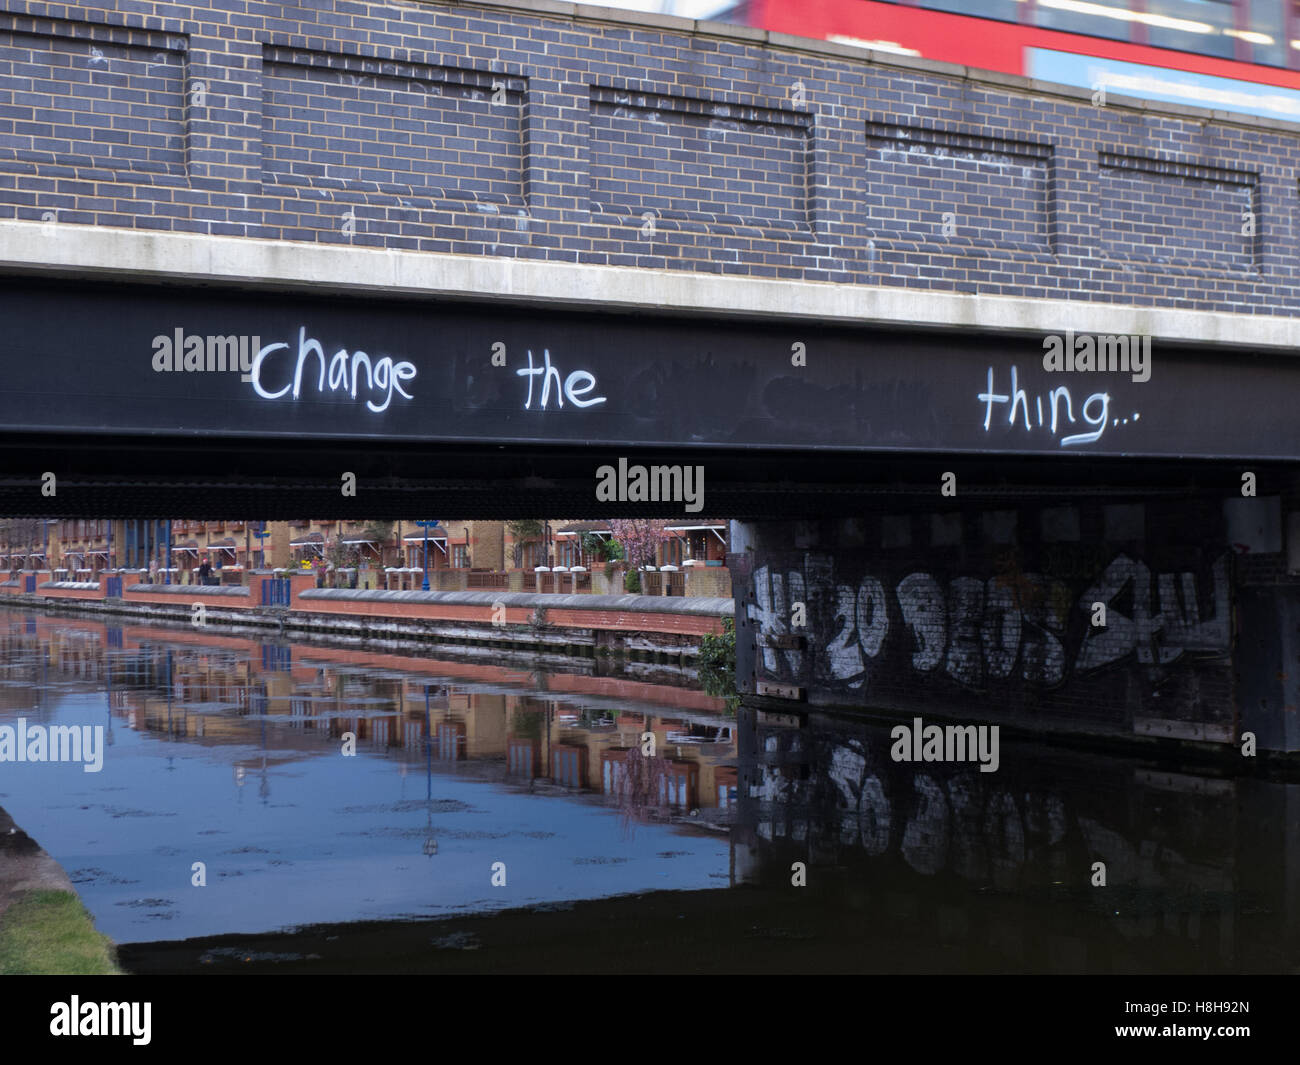 Bridge over the Lee River, London - Stock Image